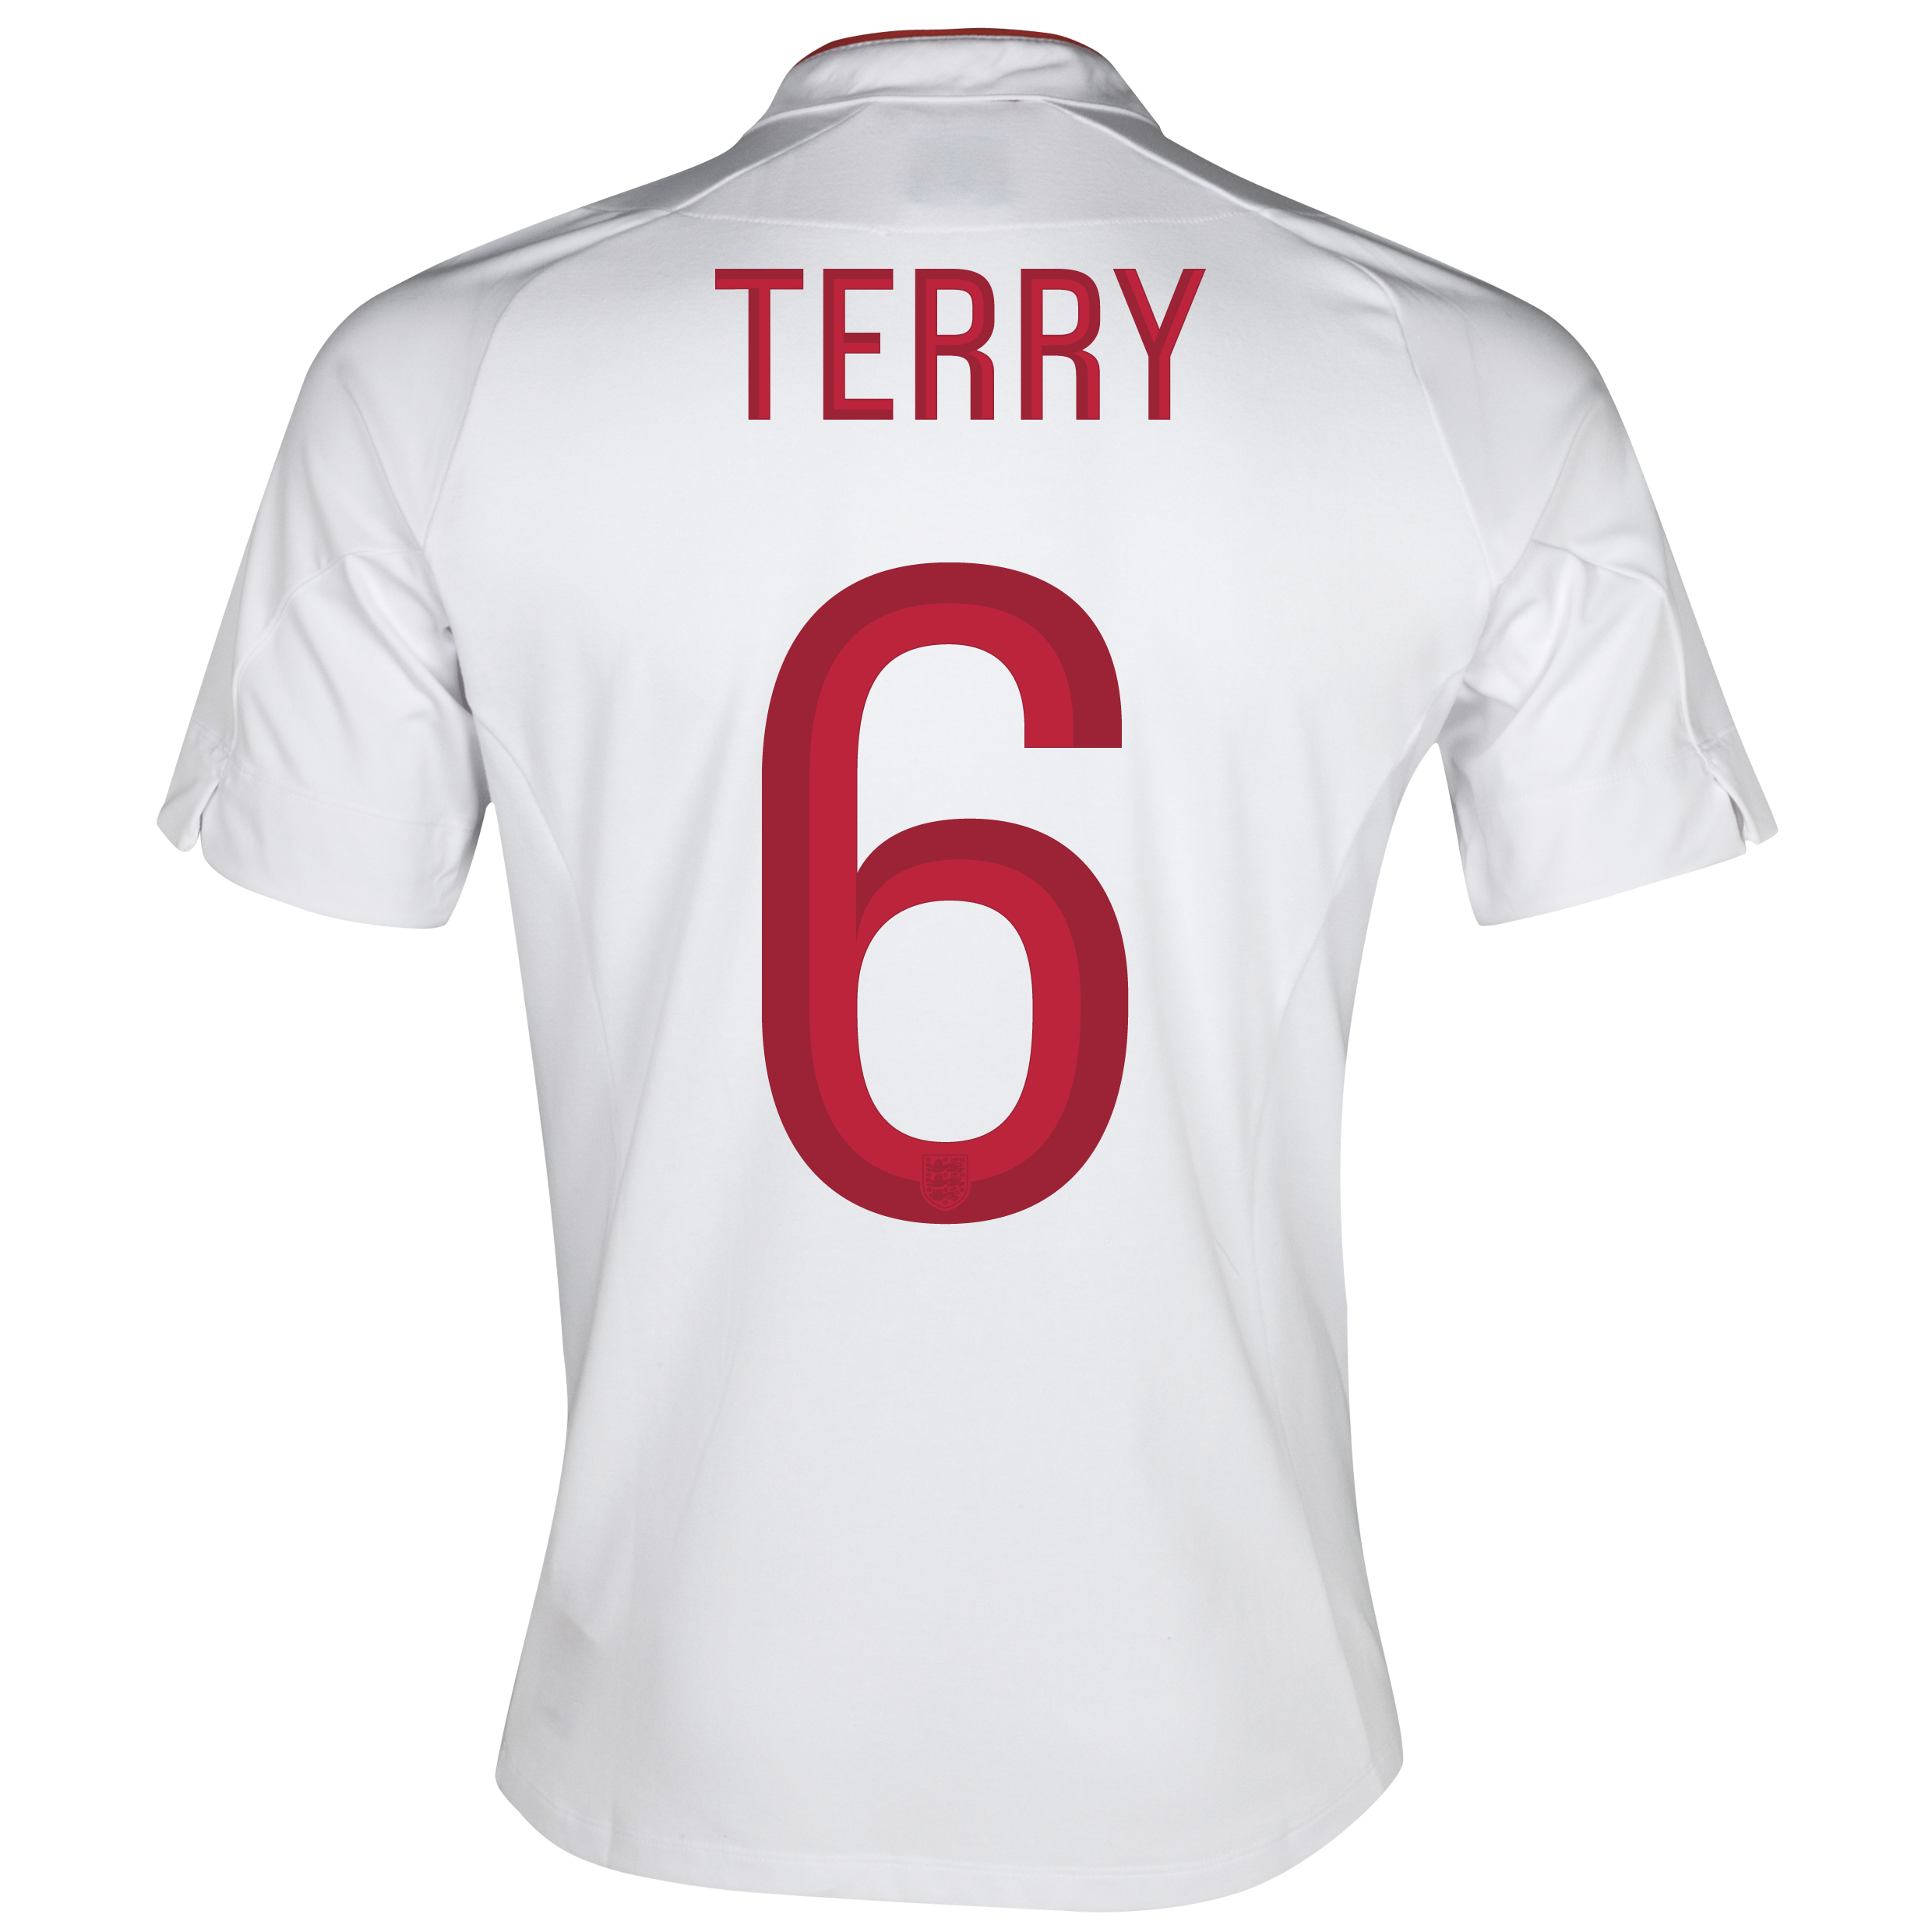 England Home Shirt 2012/13 - Boys with Terry 6 printing